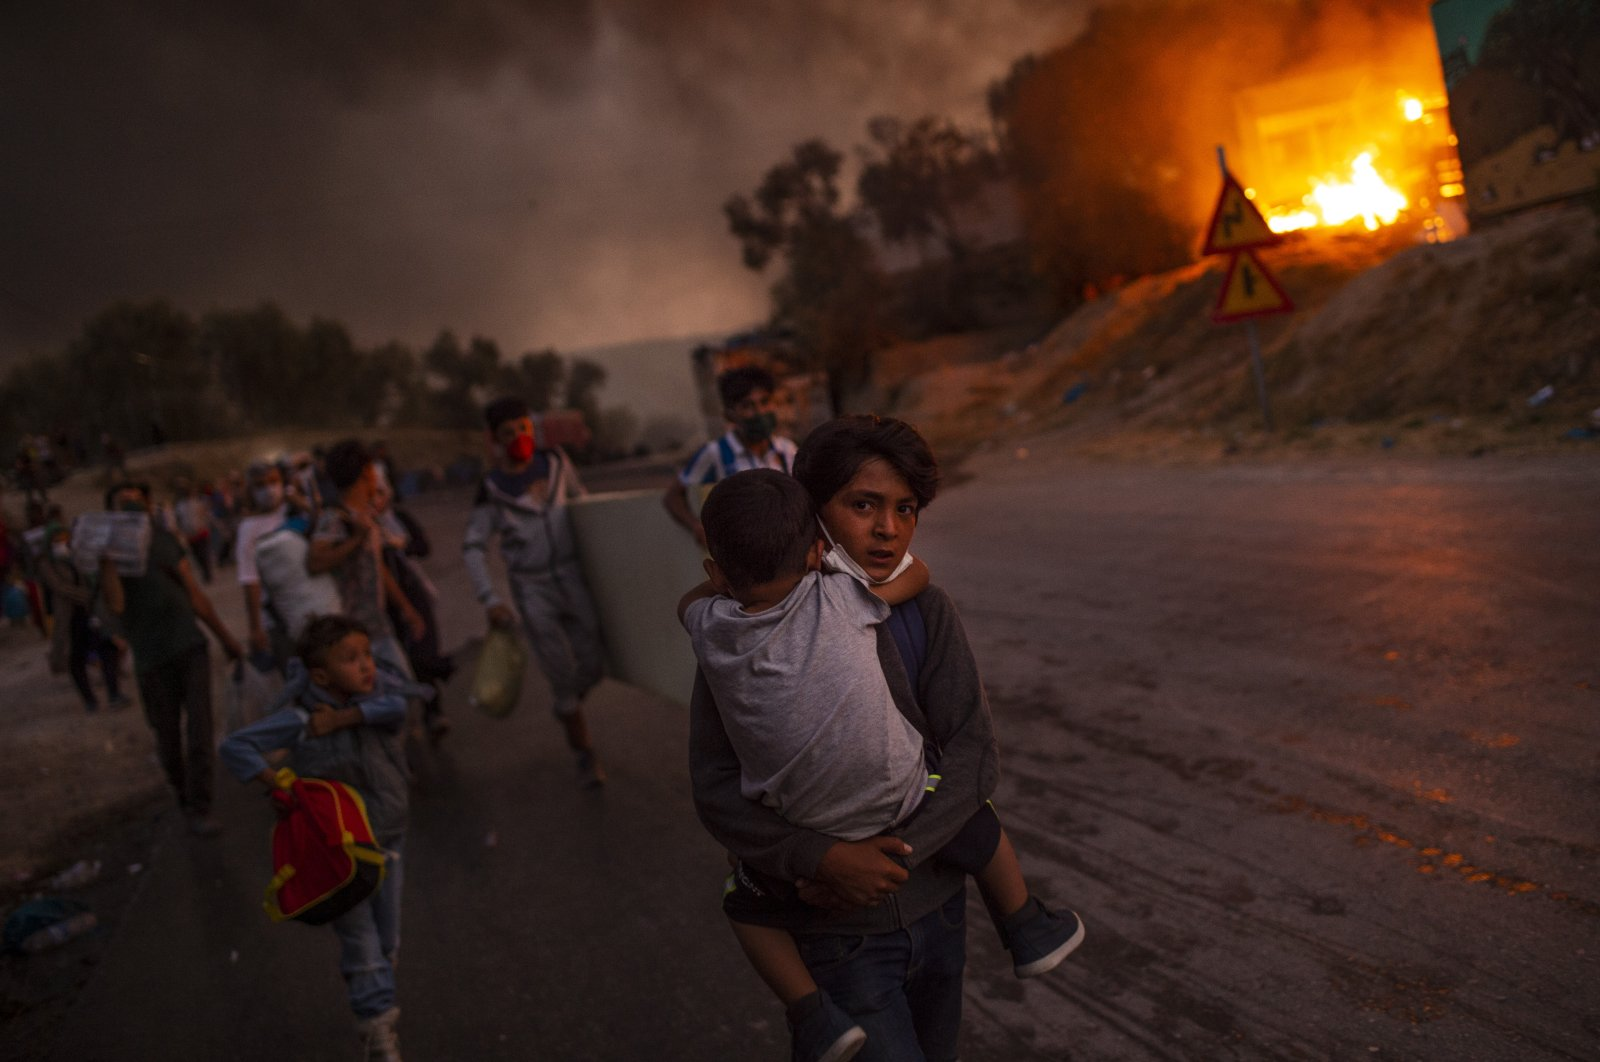 A boy carries a child in his arms as migrants flee the Moria camp after a fire broke out, on the island of Lesbos, Greece, Sept. 9, 2020. (AFP Photo)